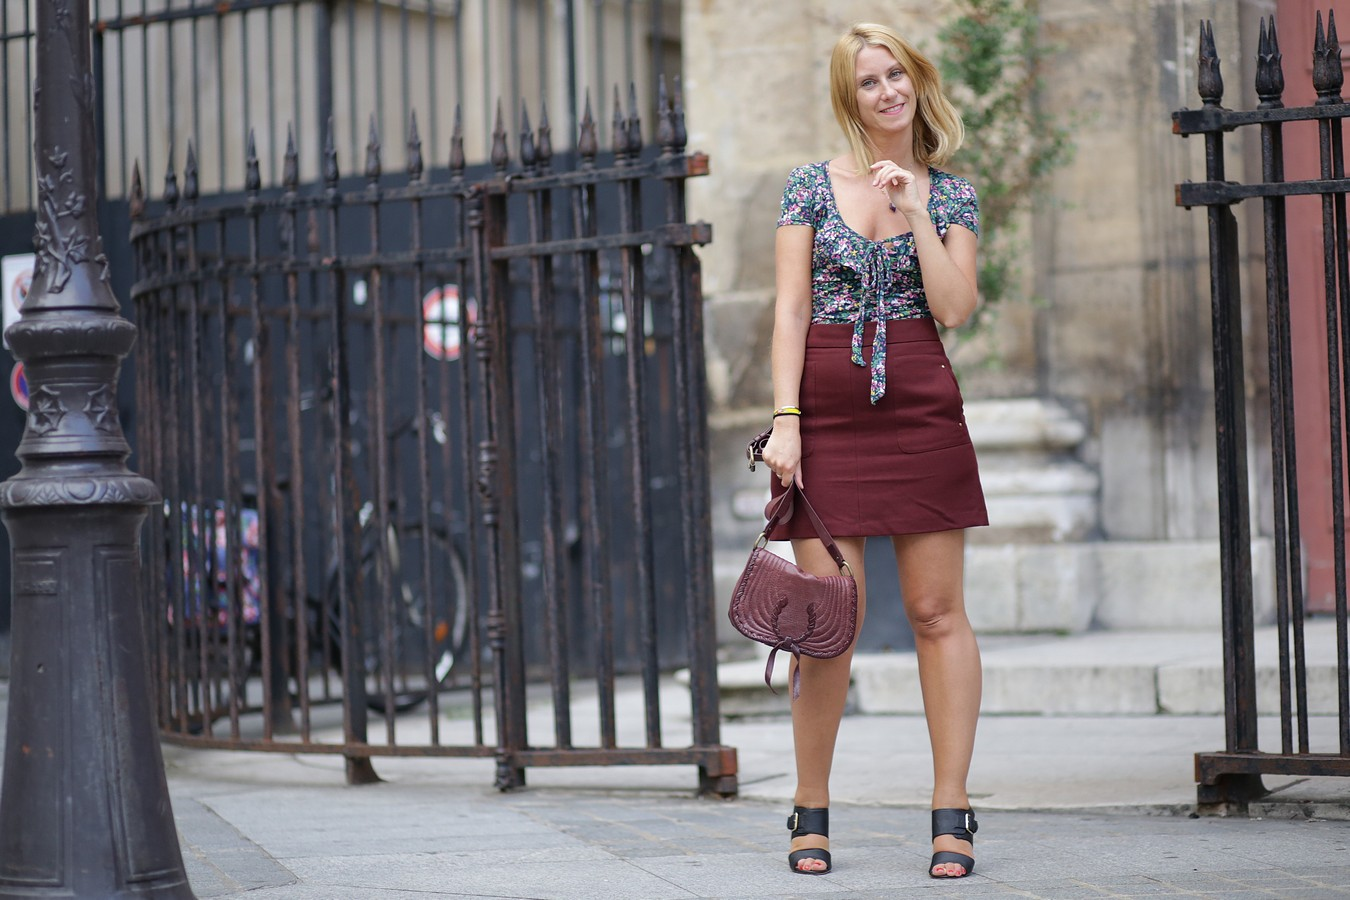 look participatif - streetstyle - paris blog mode - beaauuu paris X du style madame